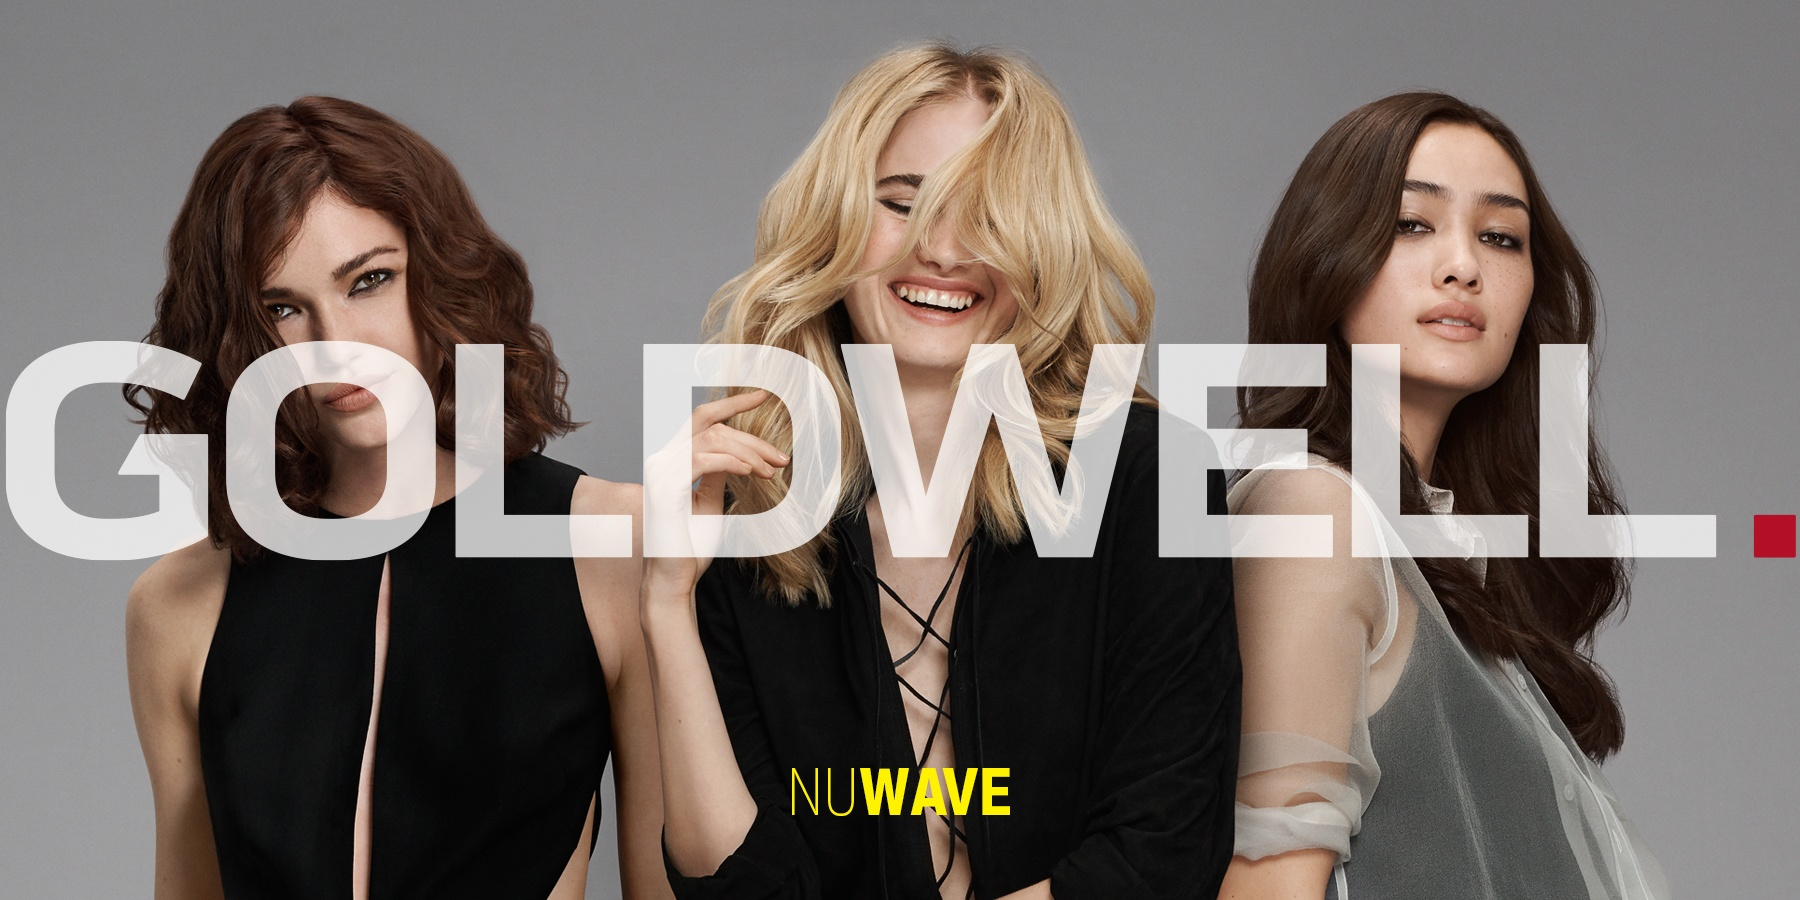 NuWave image group goldwell